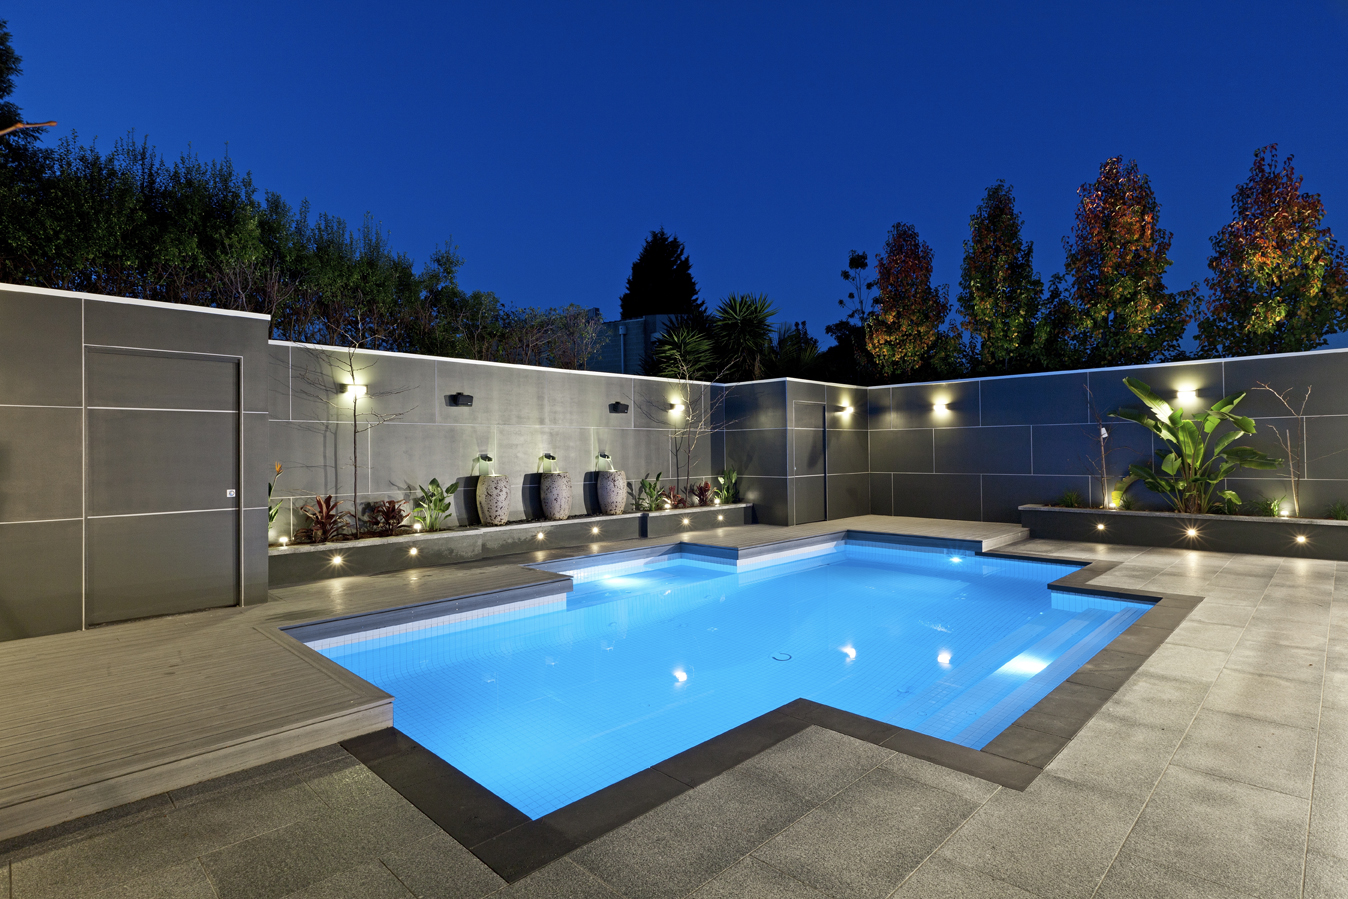 Backyard landscaping ideas swimming pool design Great pool design ideas